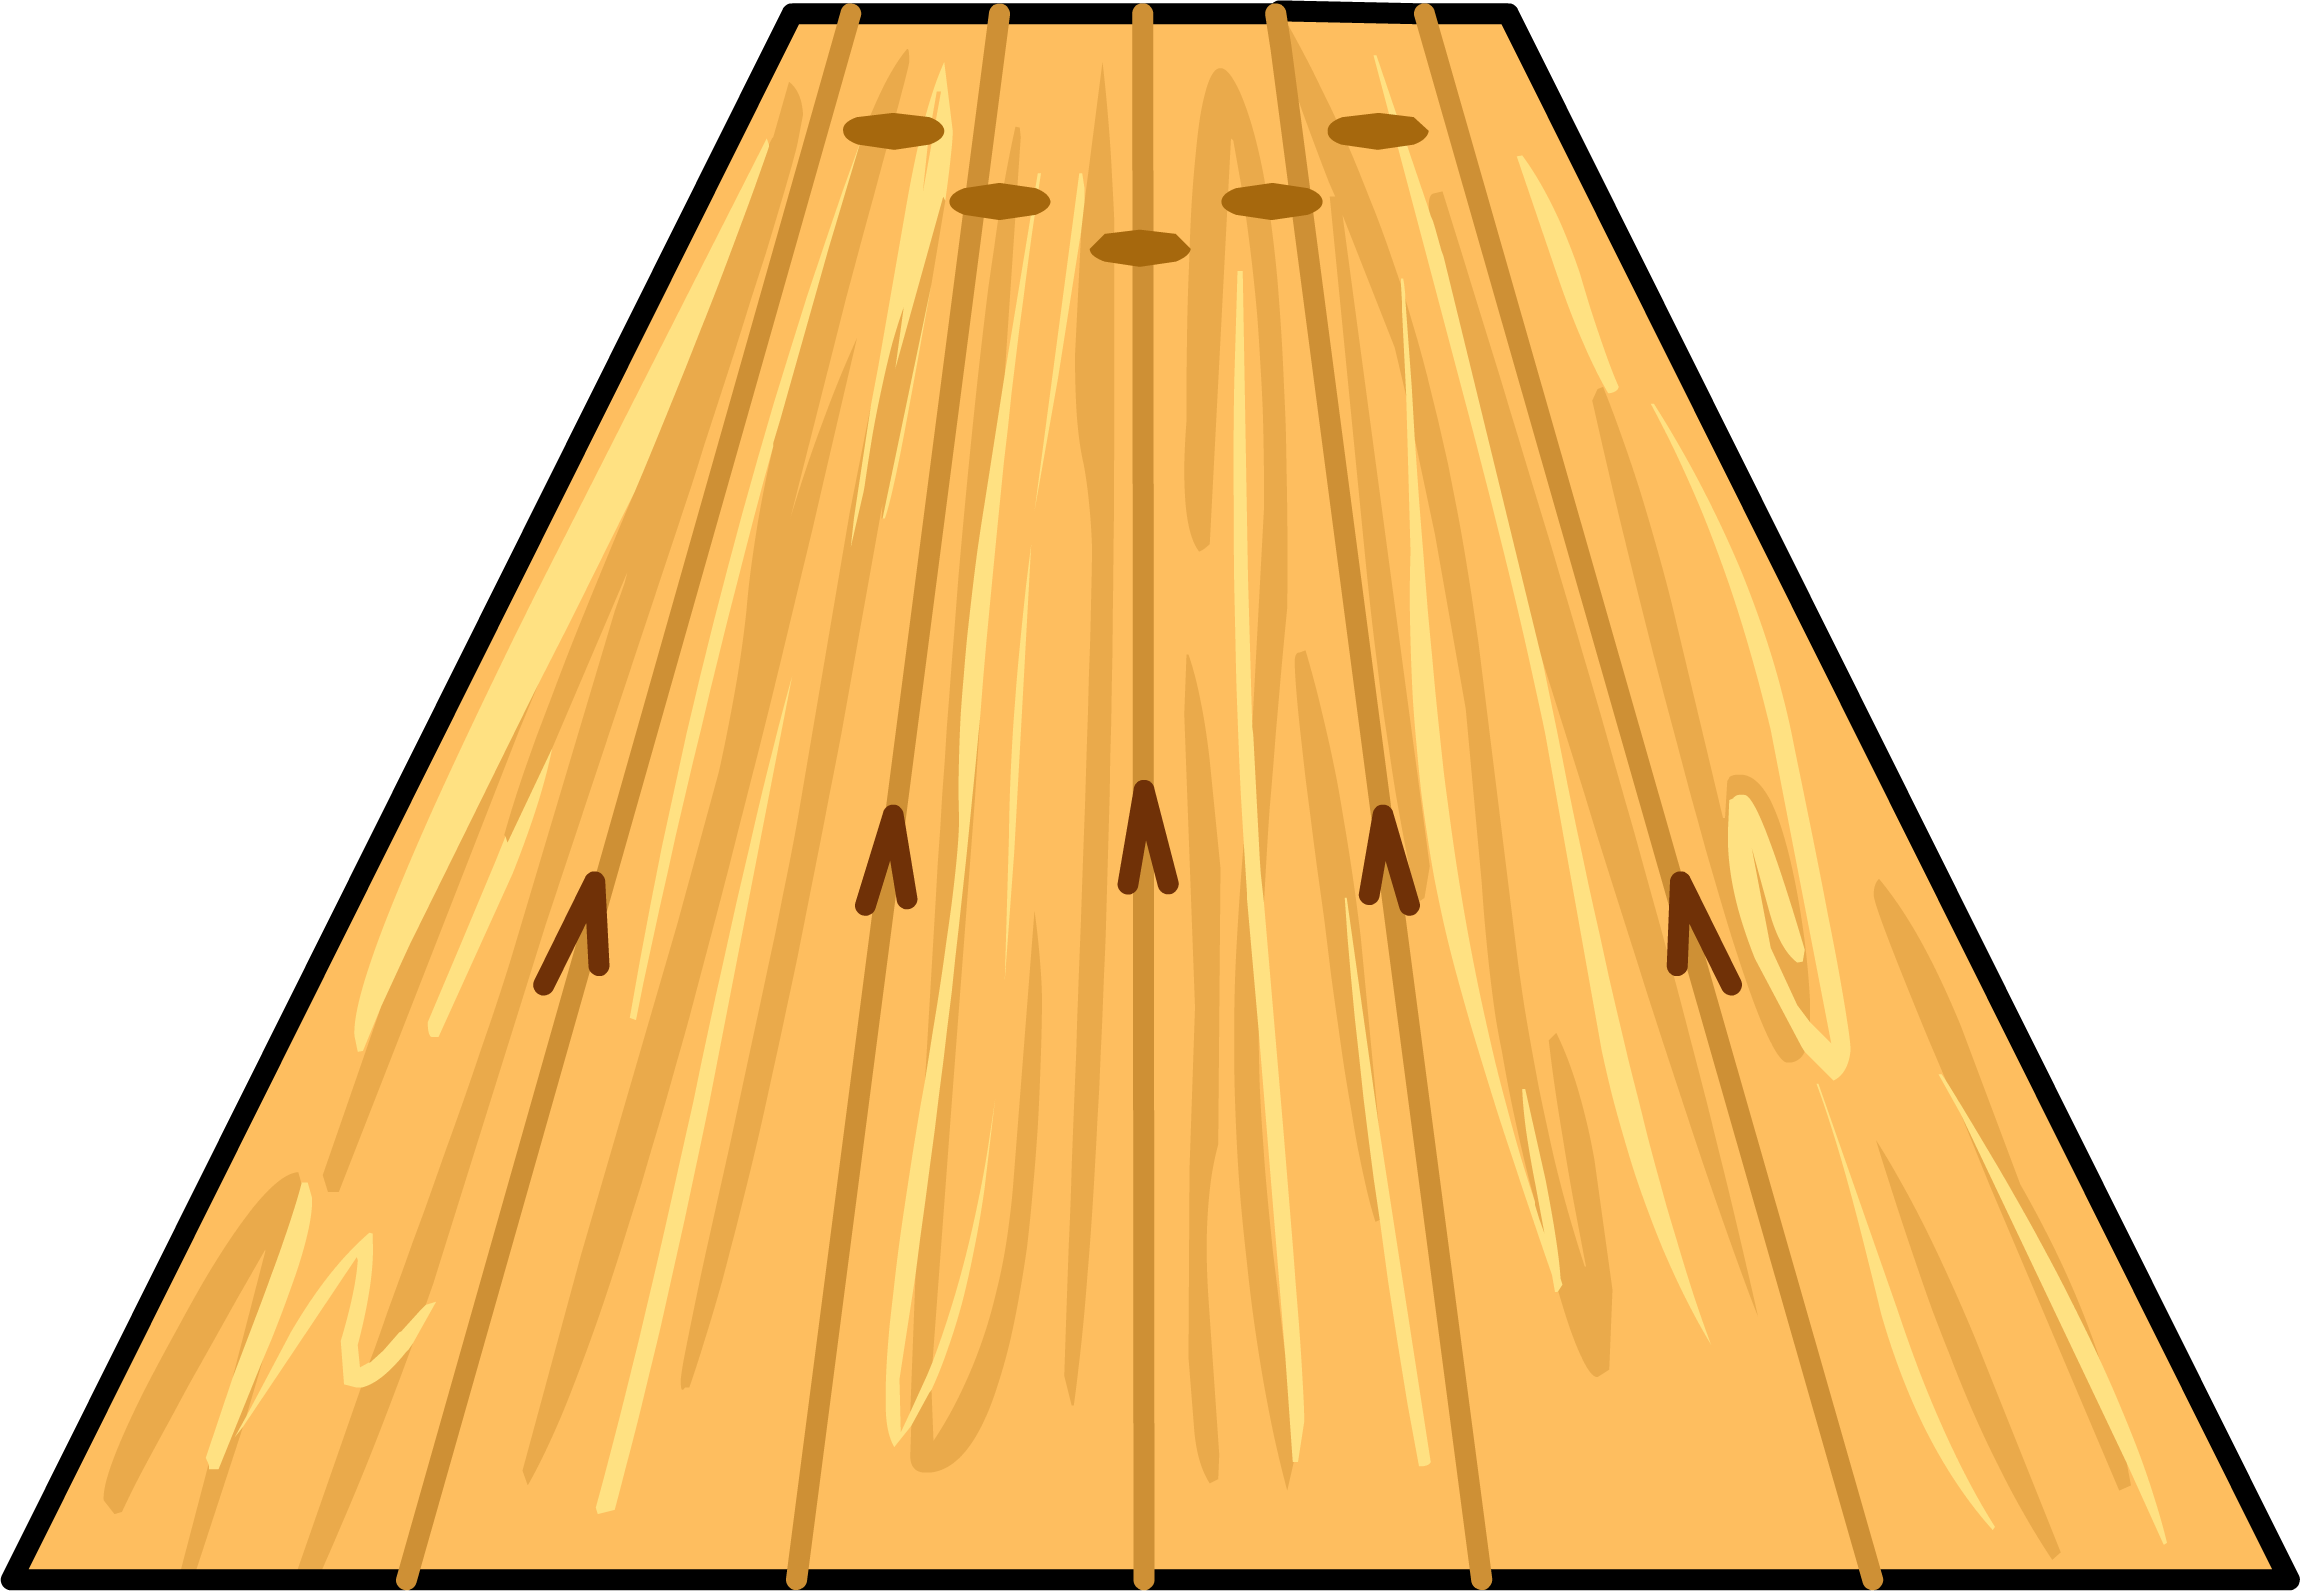 Sit clipart floor. Image bowling alley png